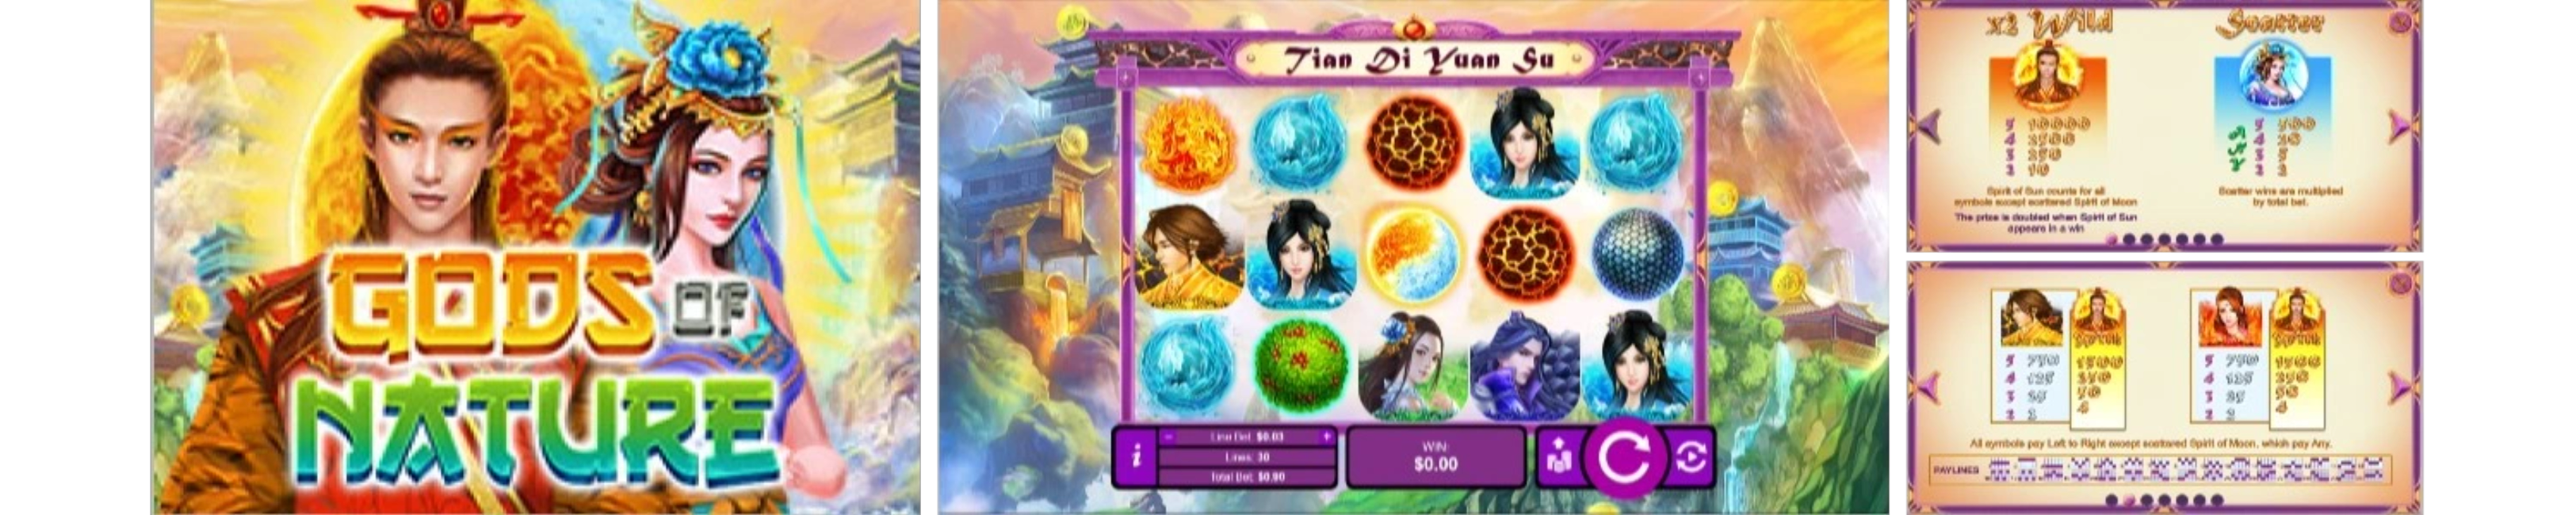 Gods of Nature Video Slots Review